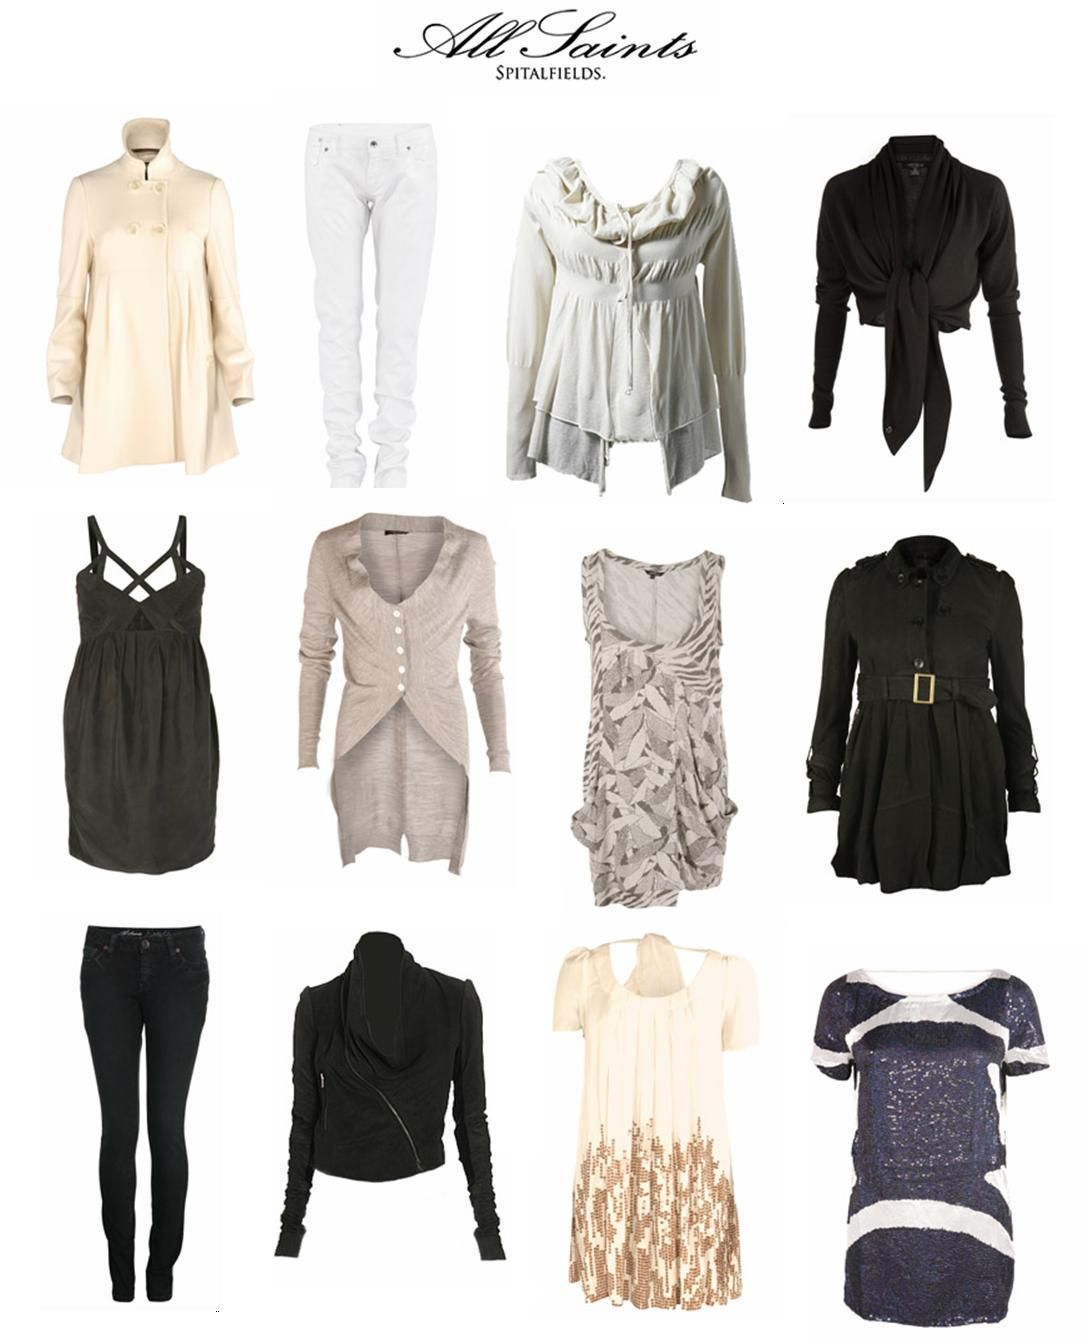 Pin by catie creglow on styles that inspire pinterest emo